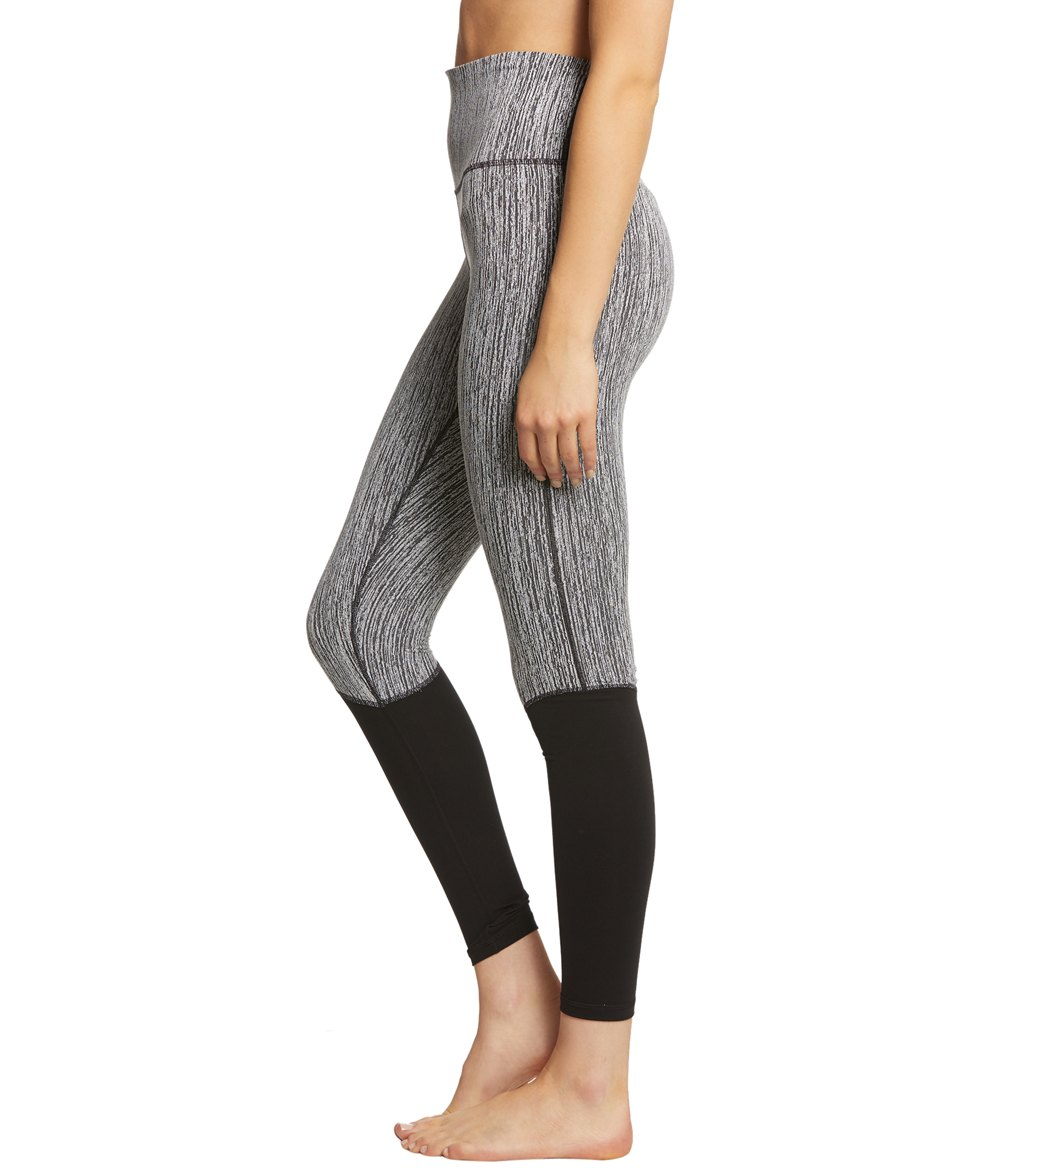 6a4d772df1805 Manduka The High Line Yoga Leggings at YogaOutlet.com - Free Shipping